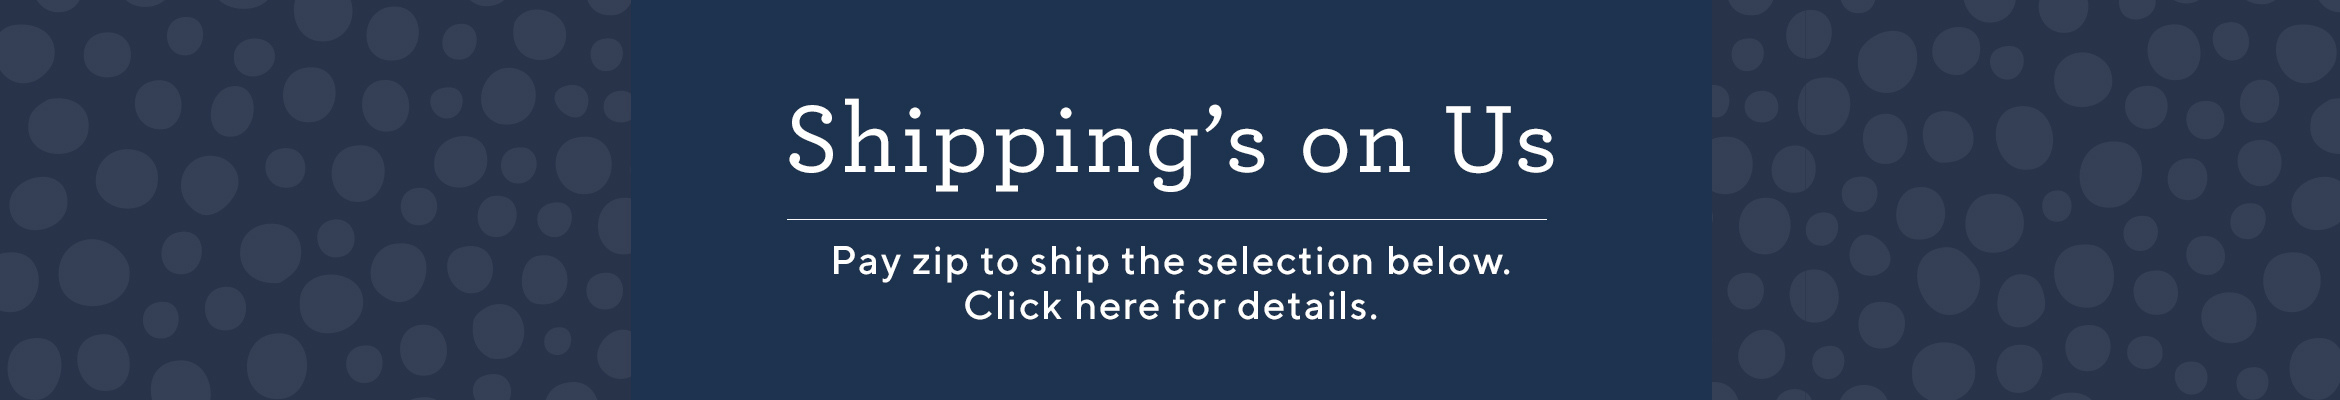 Shipping's on Us. Pay zip to ship the selection below.  Click here for details.